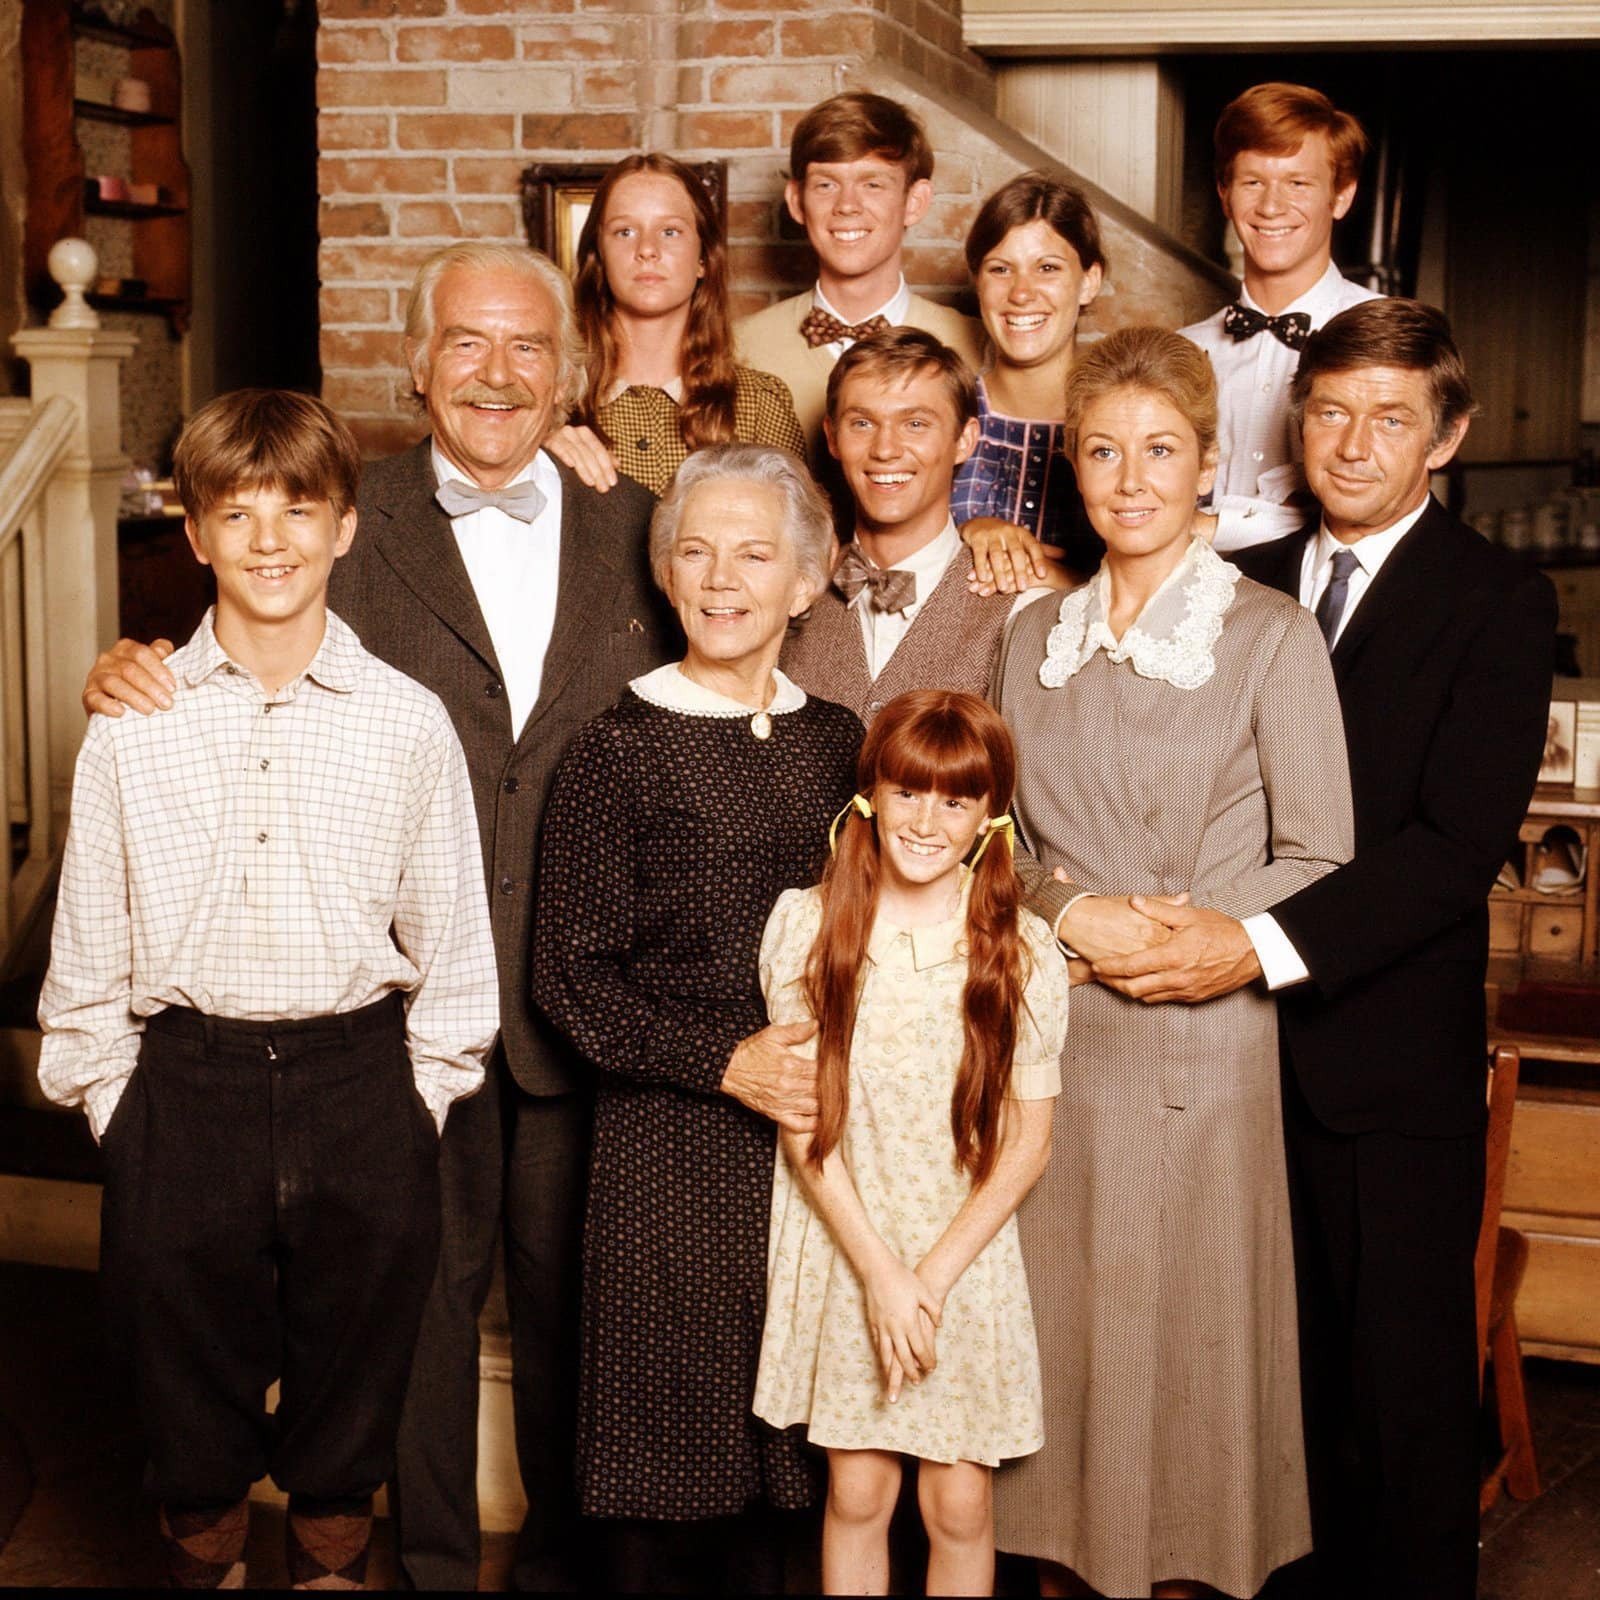 About The Waltons, the nostalgic 1970s hit TV series